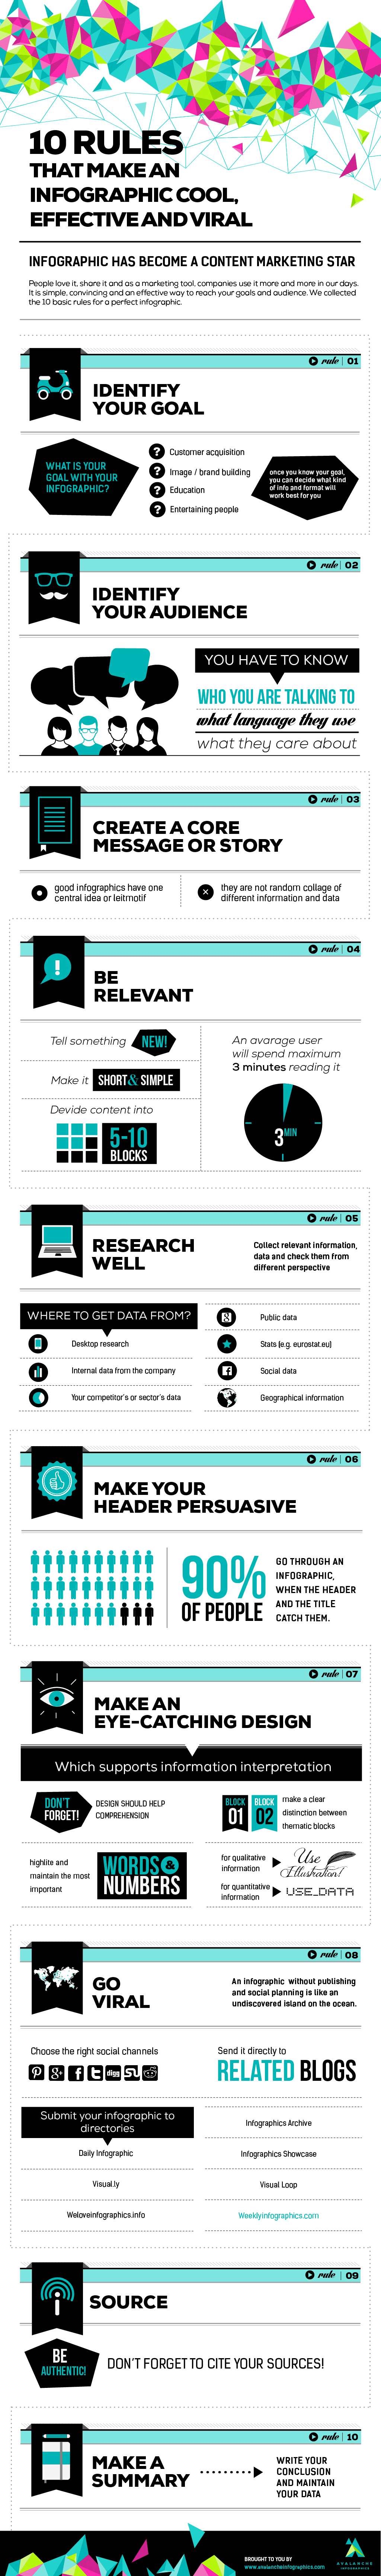 10 rules for a viral infographic